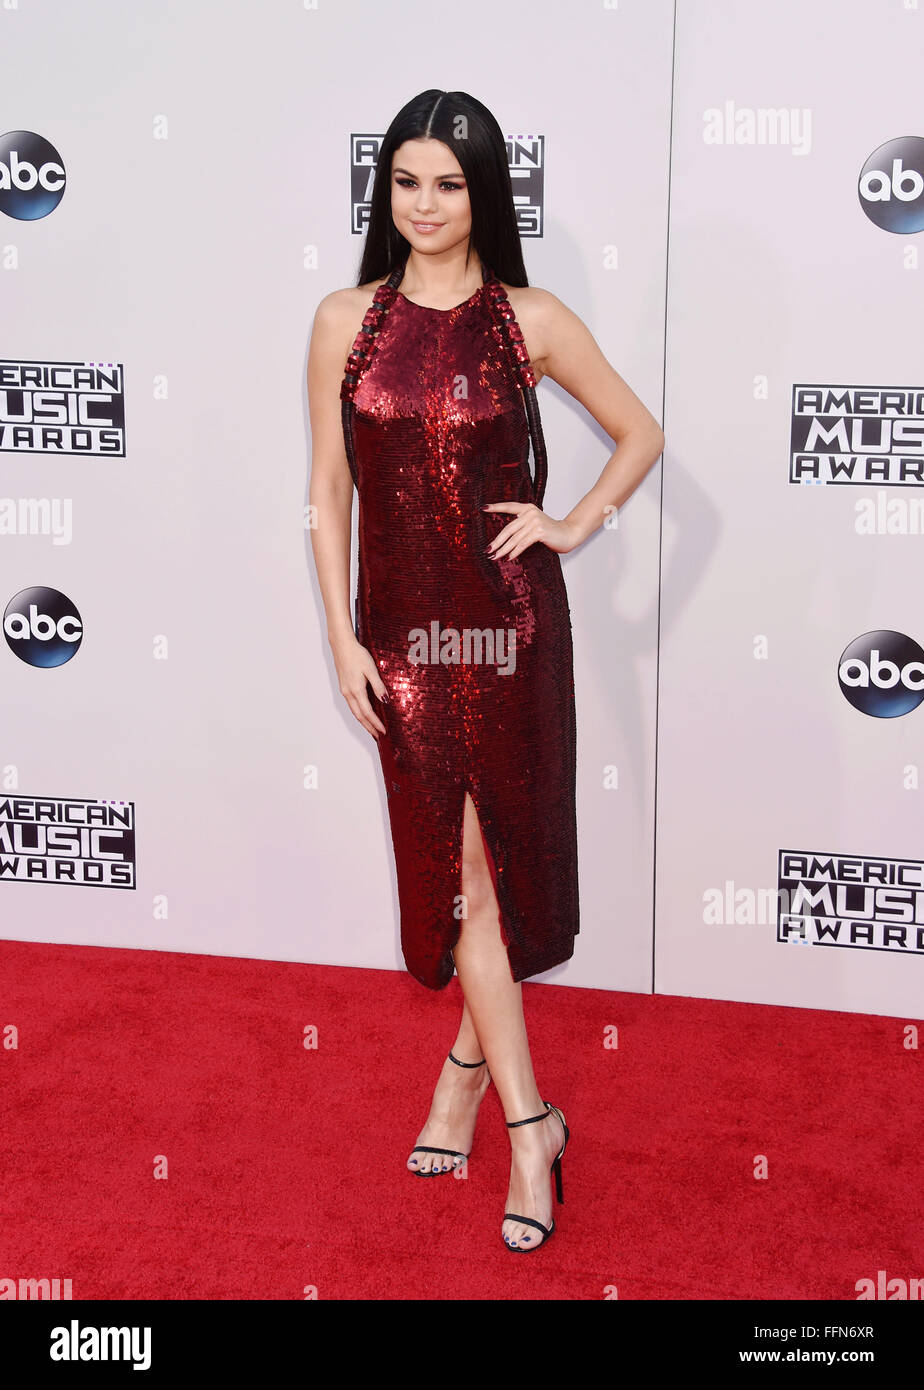 Singer/actress Selena Gomez arrives at the 2015 American Music Awards at Microsoft Theater on November 22, 2015 - Stock Image